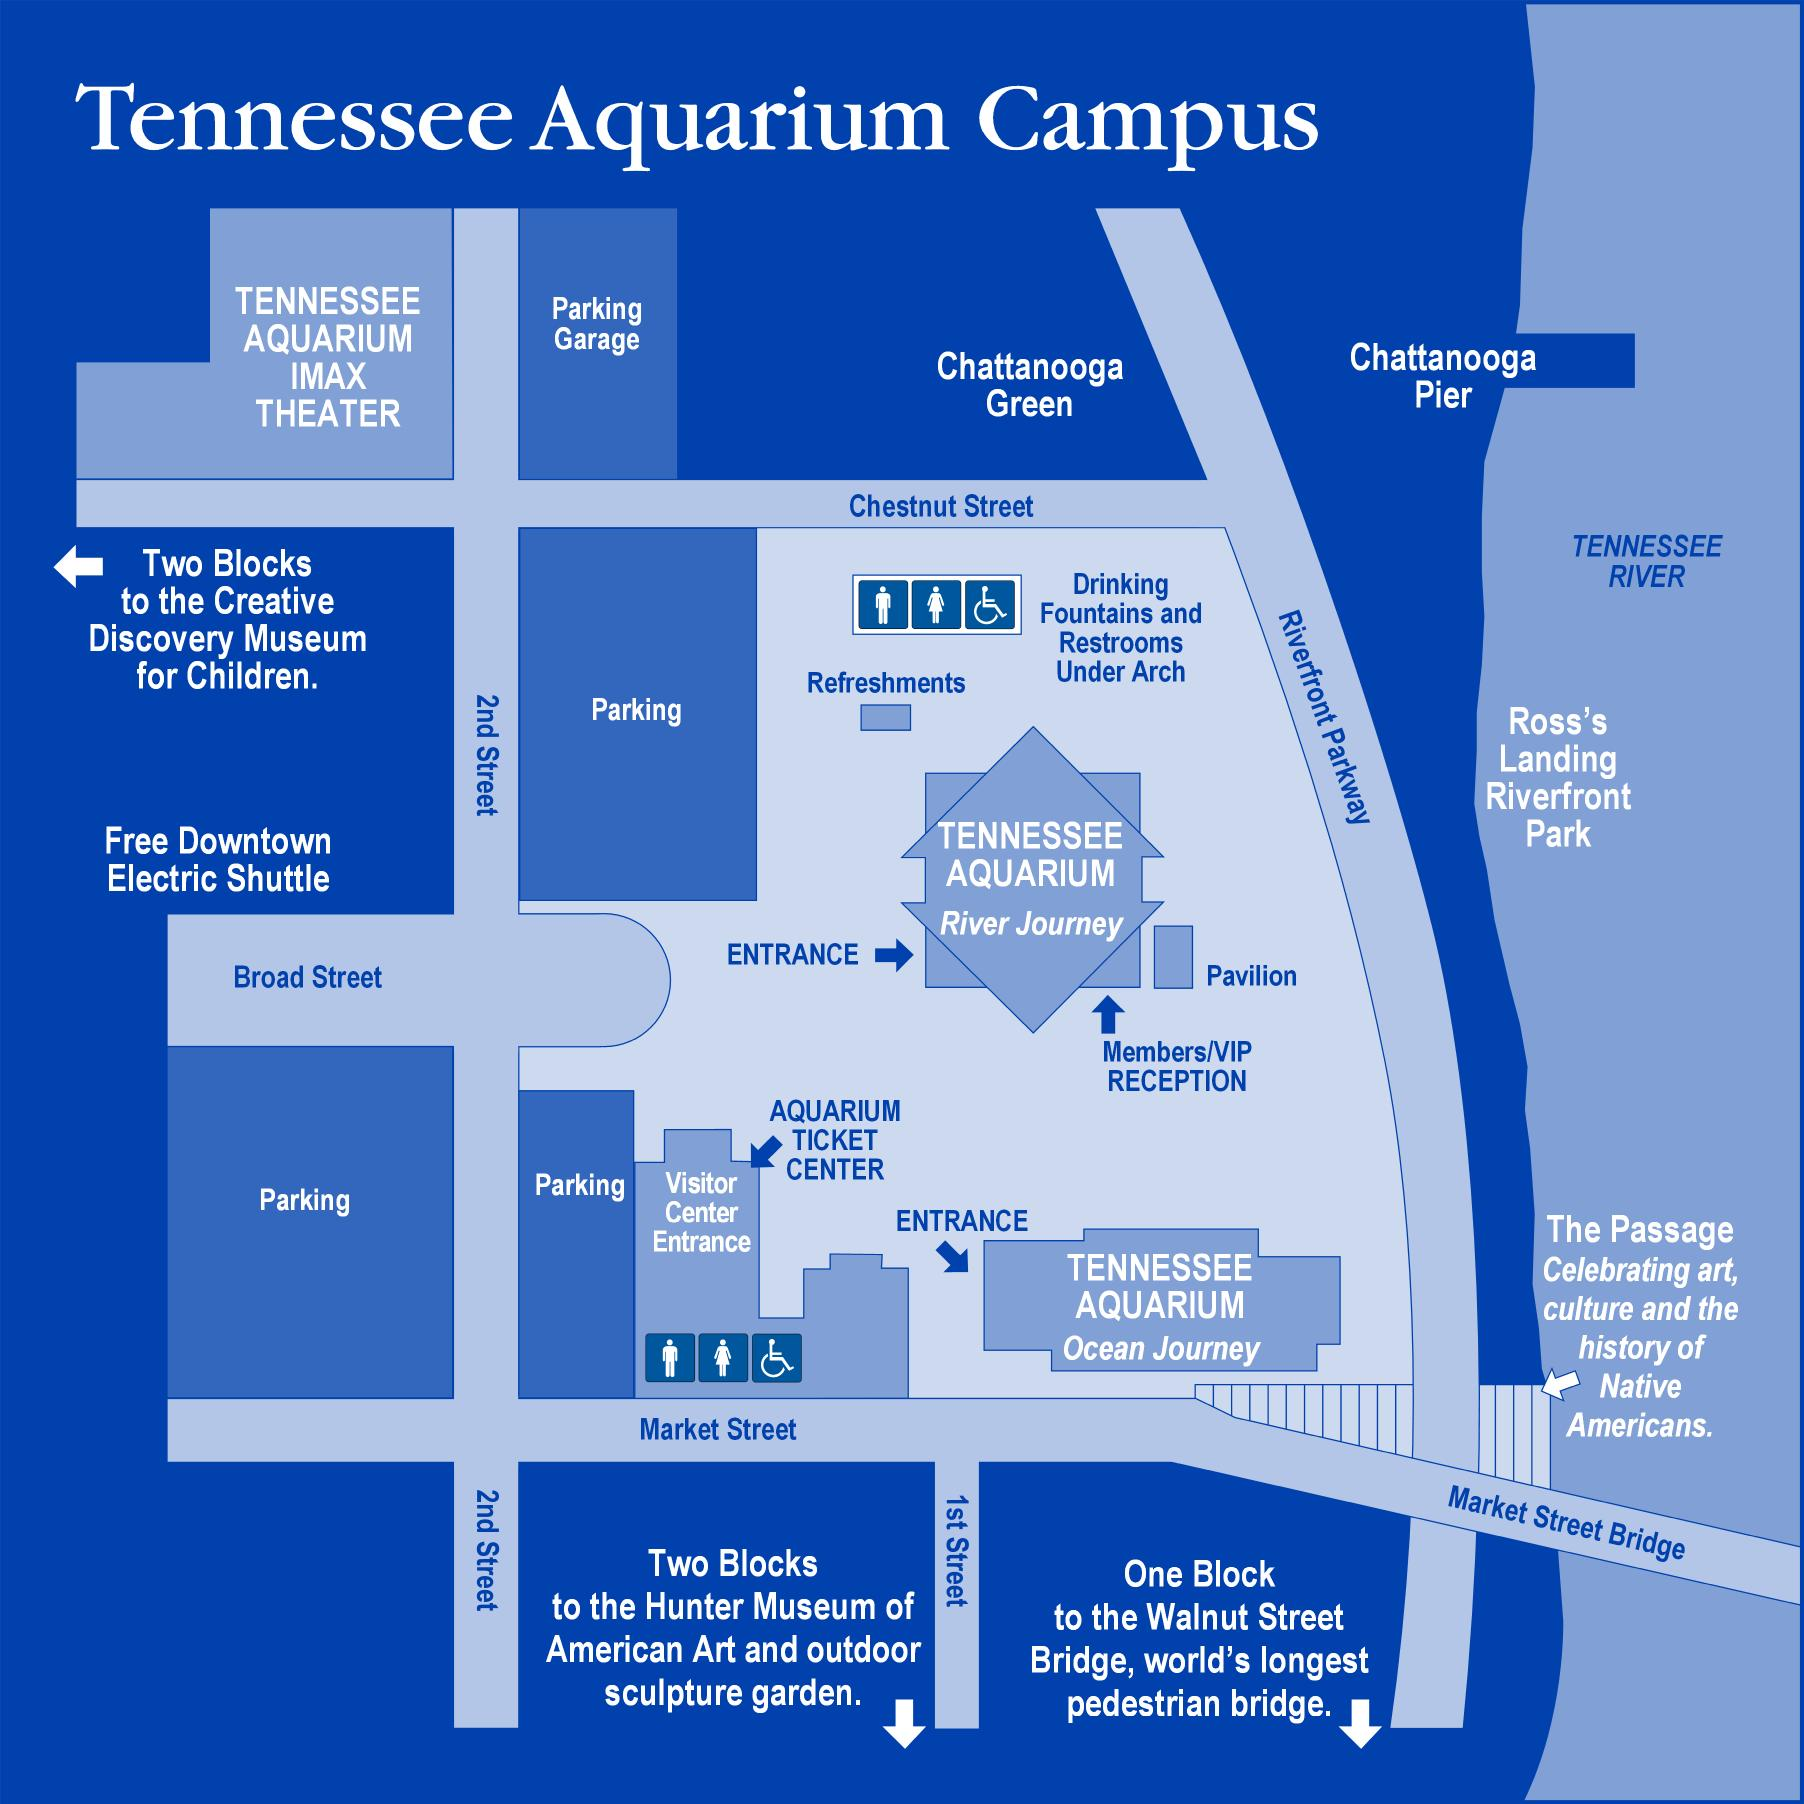 Tennessee Aquarium Campus Map Chatanooga Tennessee USA mappery